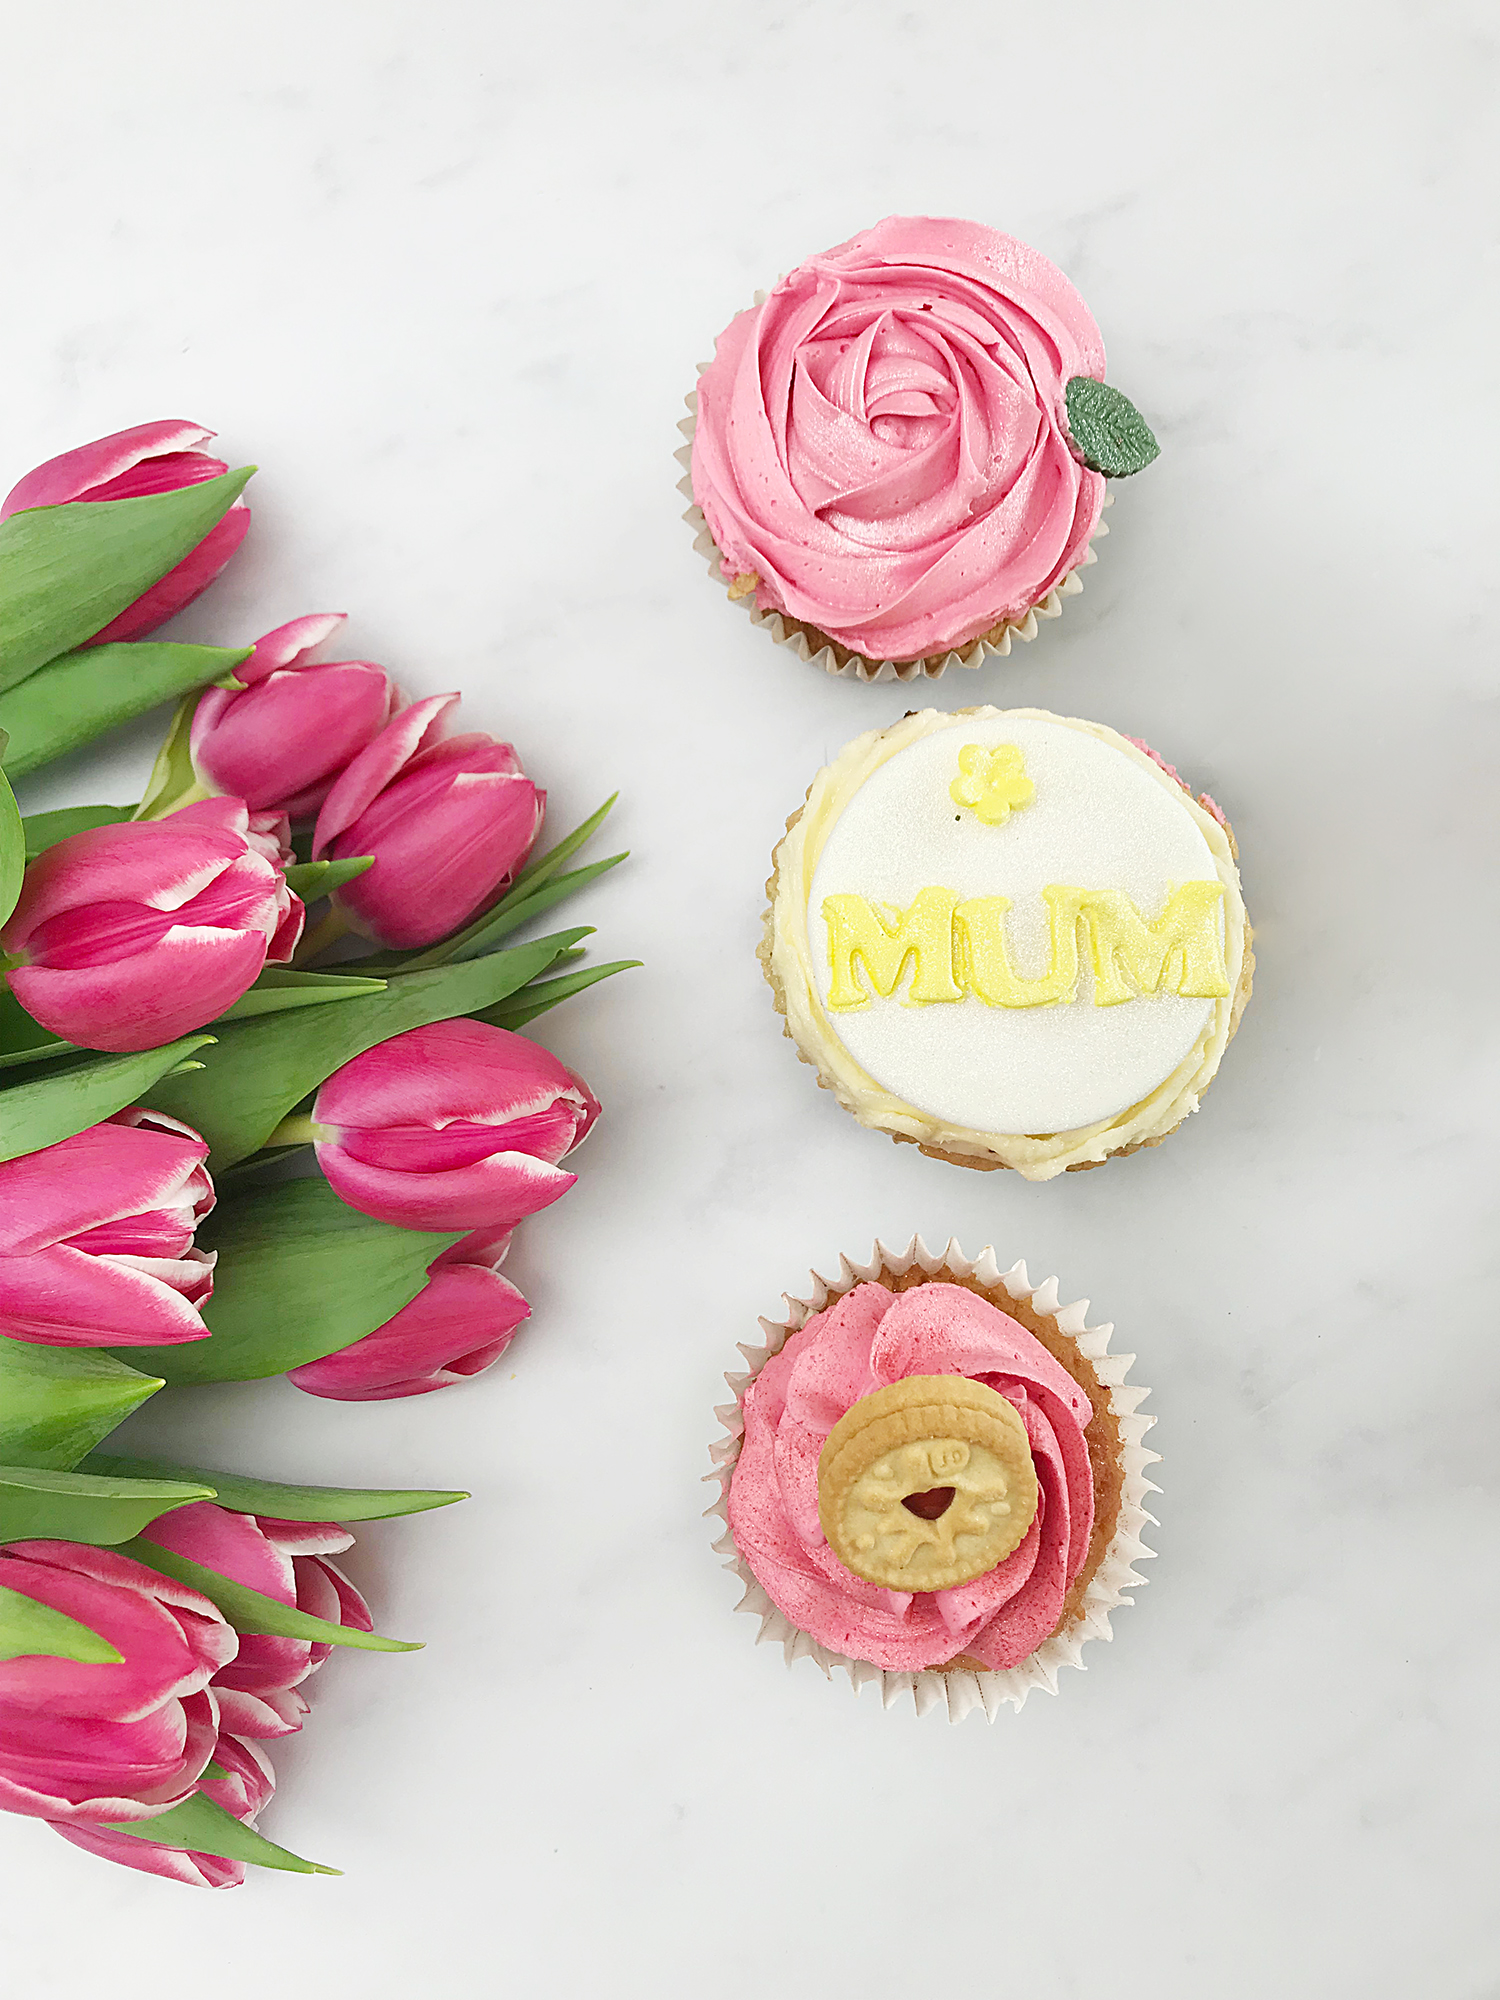 3 cupcakes with a bouquet of tulips. One of the cupcakes has Mum written on it, the other 2 are pink